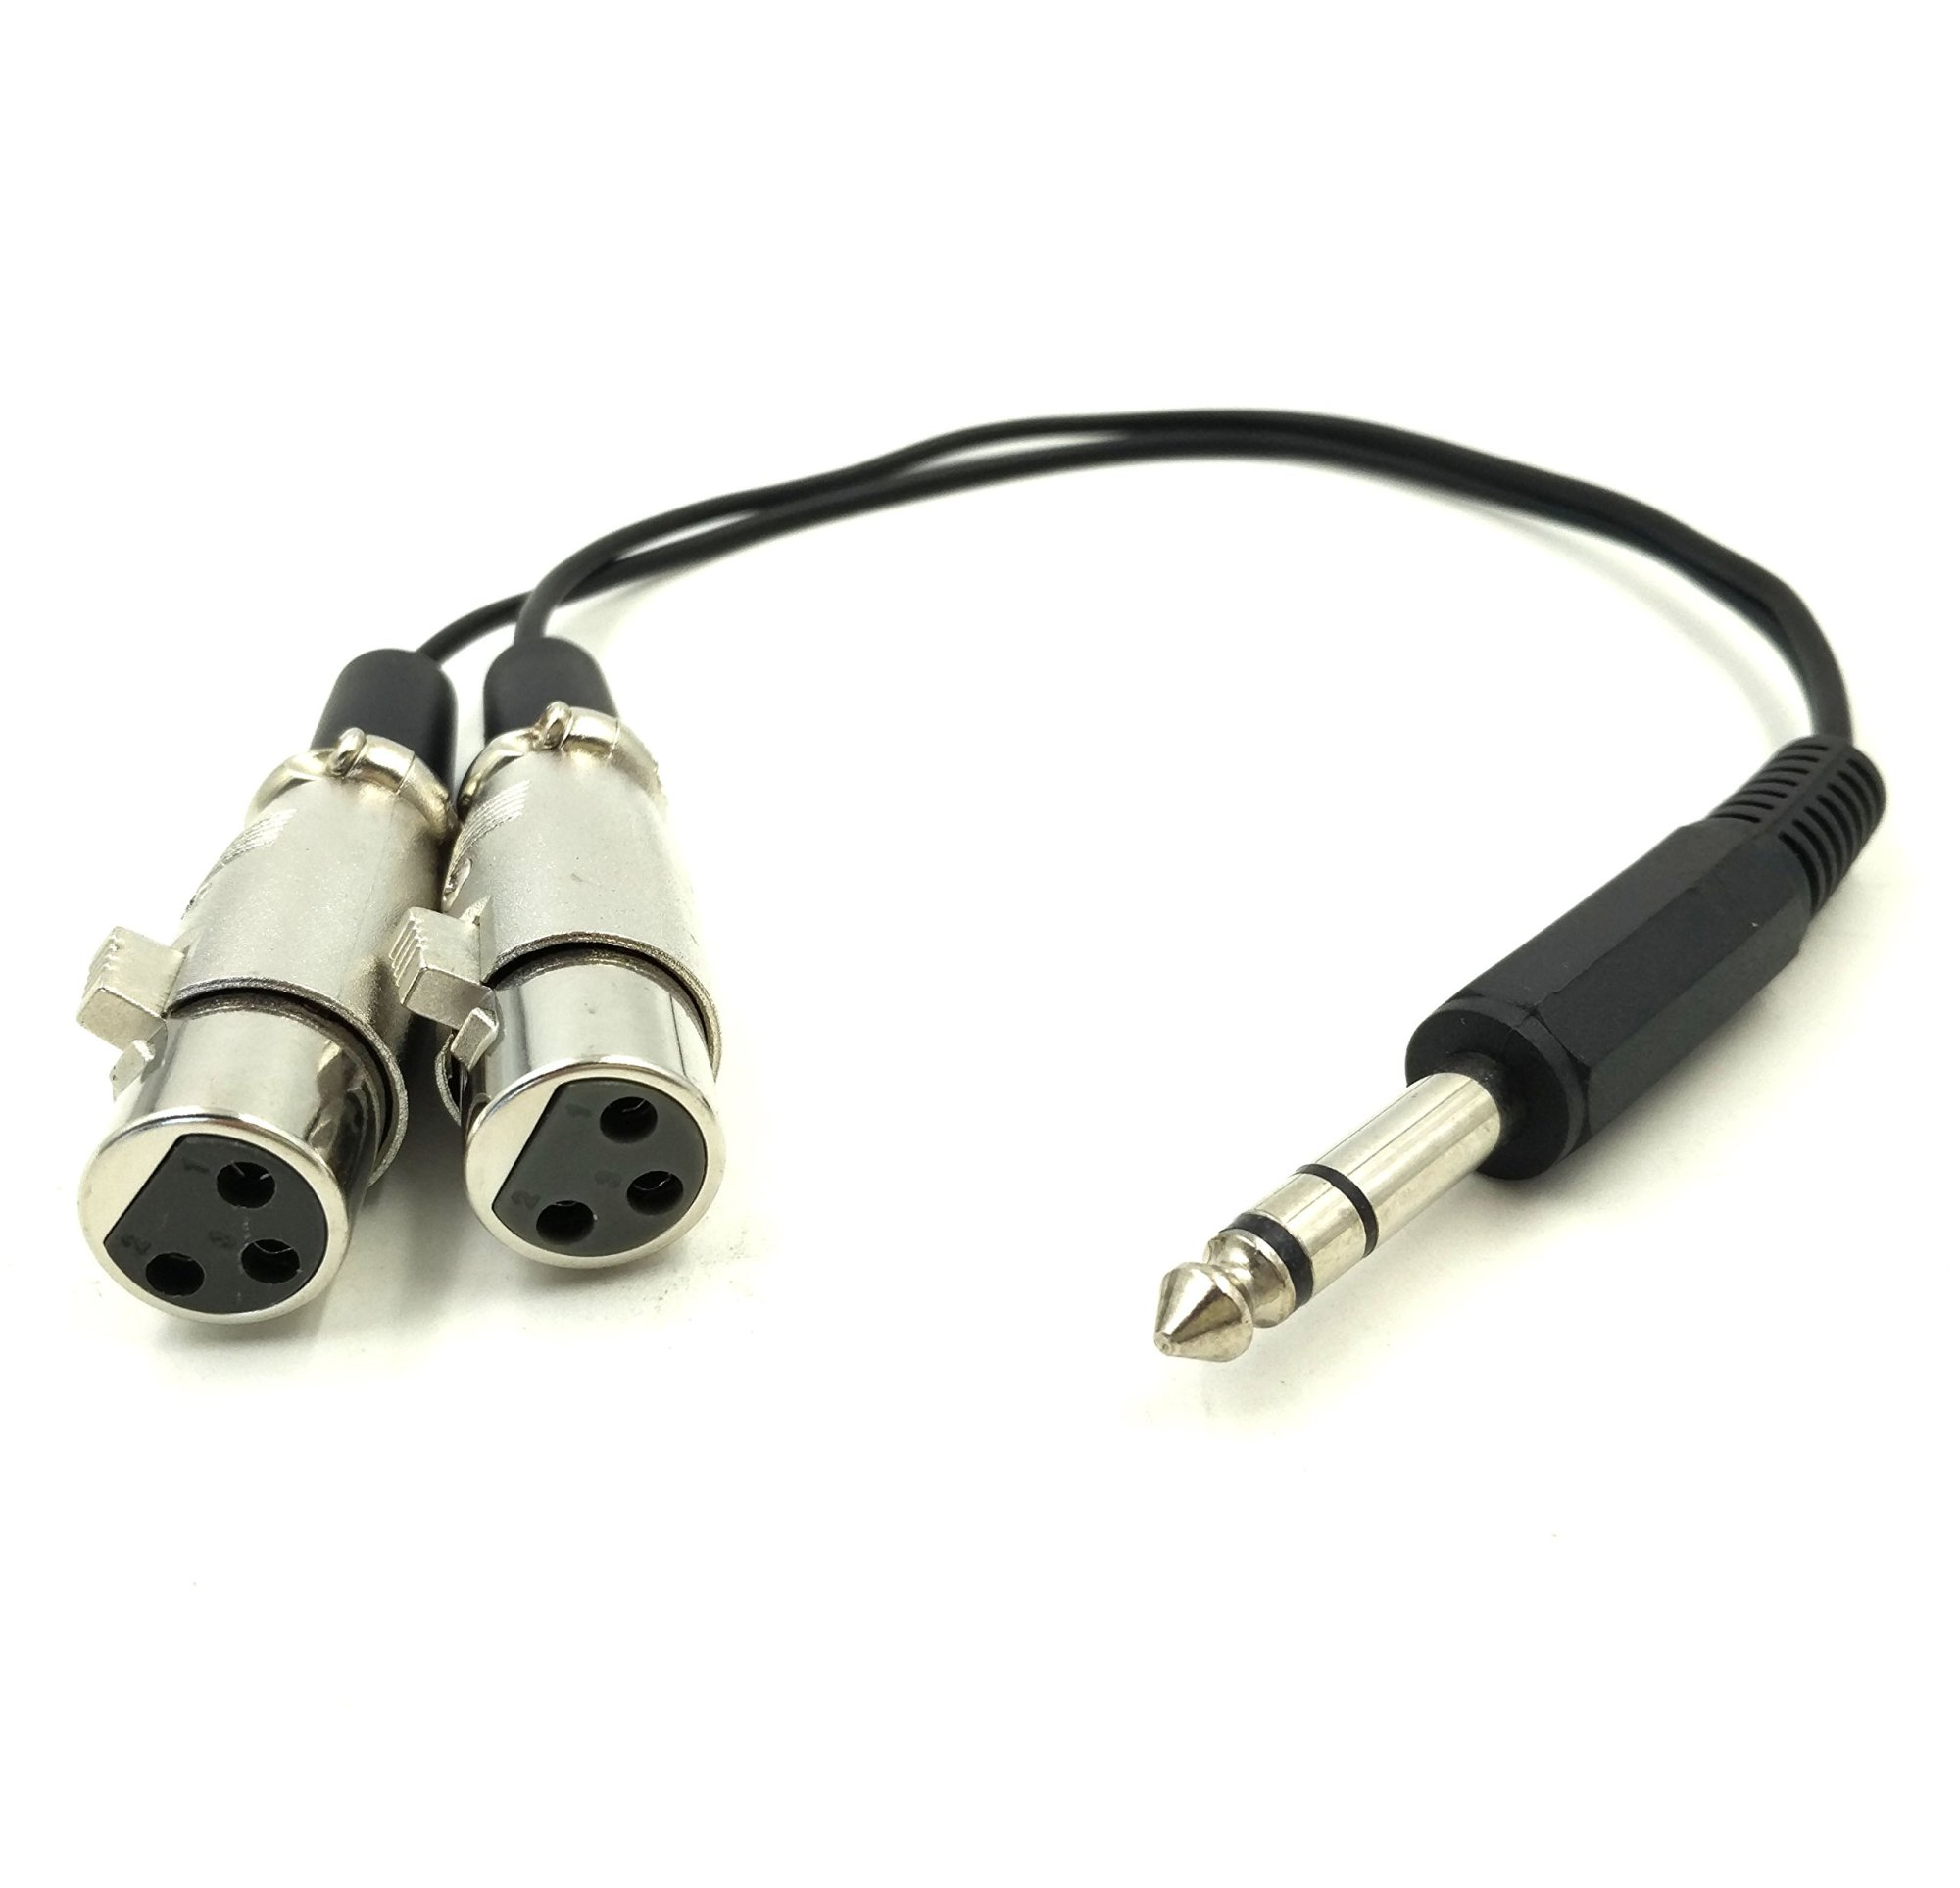 hight resolution of get quotations exuun 1 4 inch to xlr audio y splitter converter cable 1ft 30cm